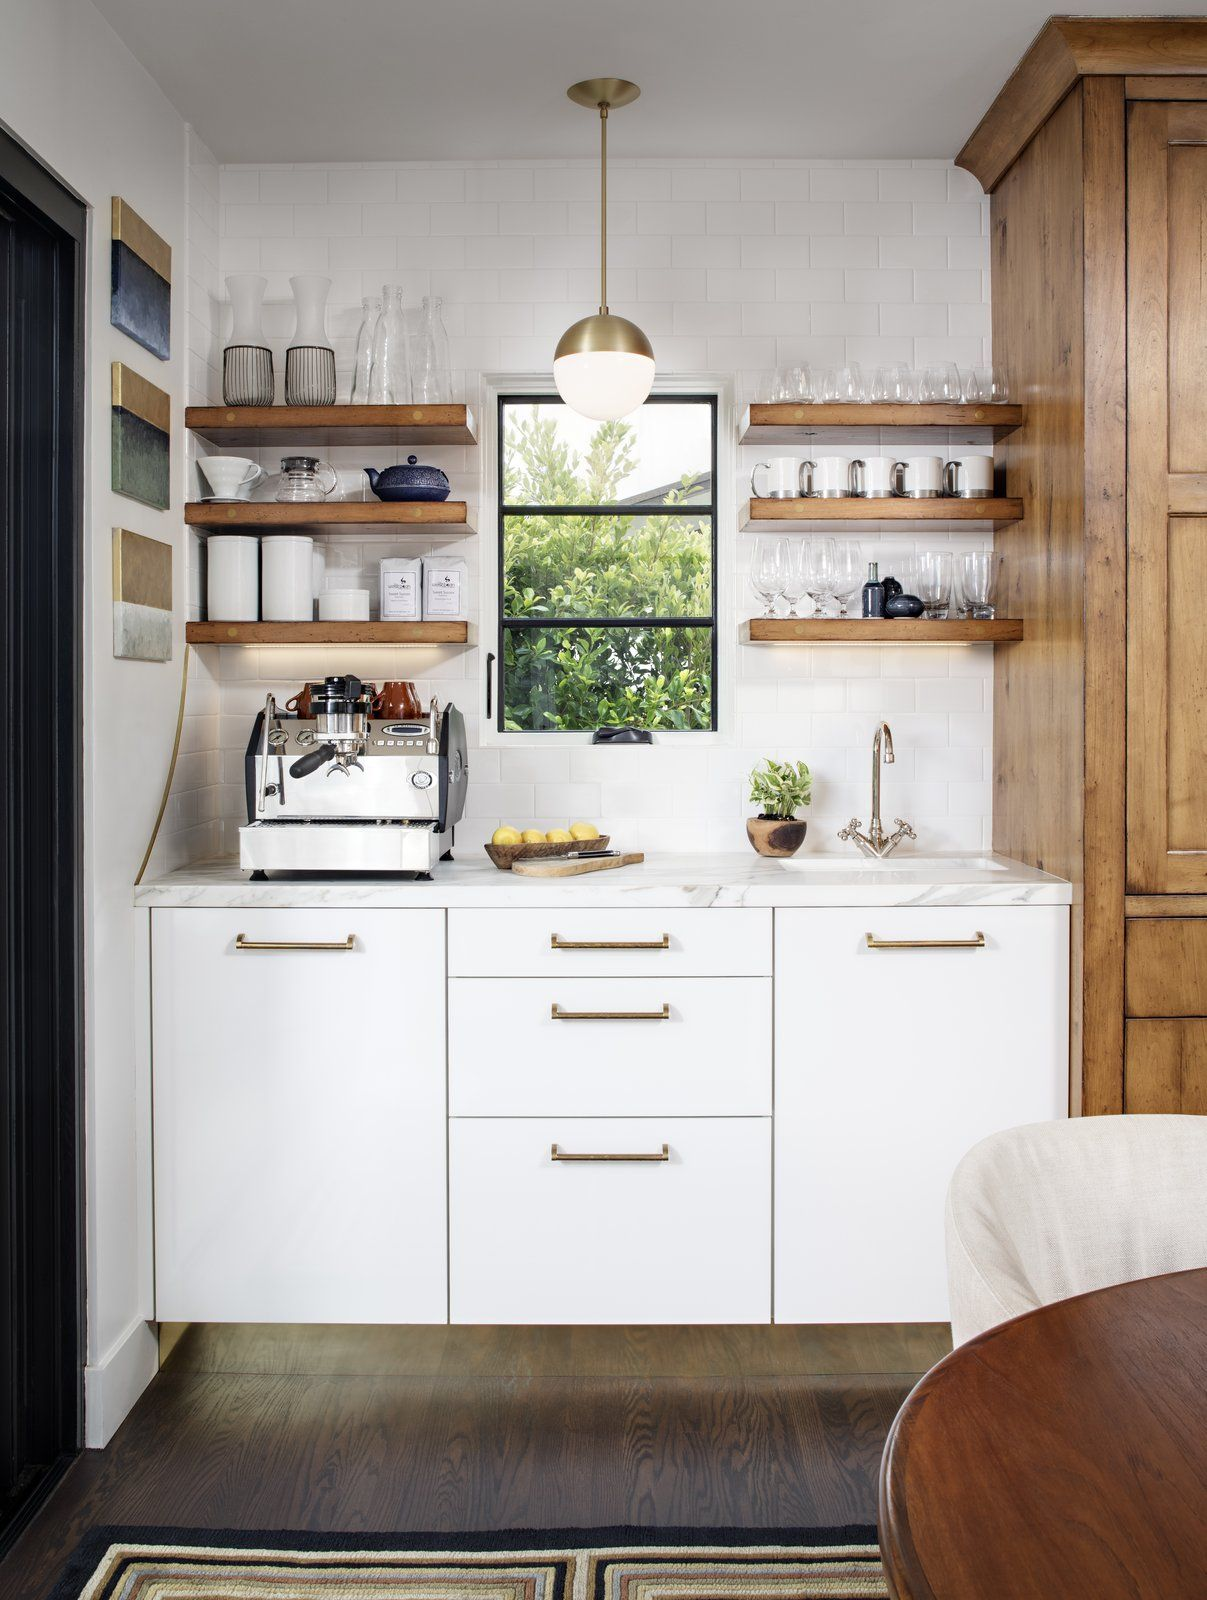 A Coffee Bar With Siematic Cabinets And Open Shelves With Bright Gold Handles And Toekick Modern Mixed Coffee Bars In Kitchen Eclectic Kitchen Urban Kitchen